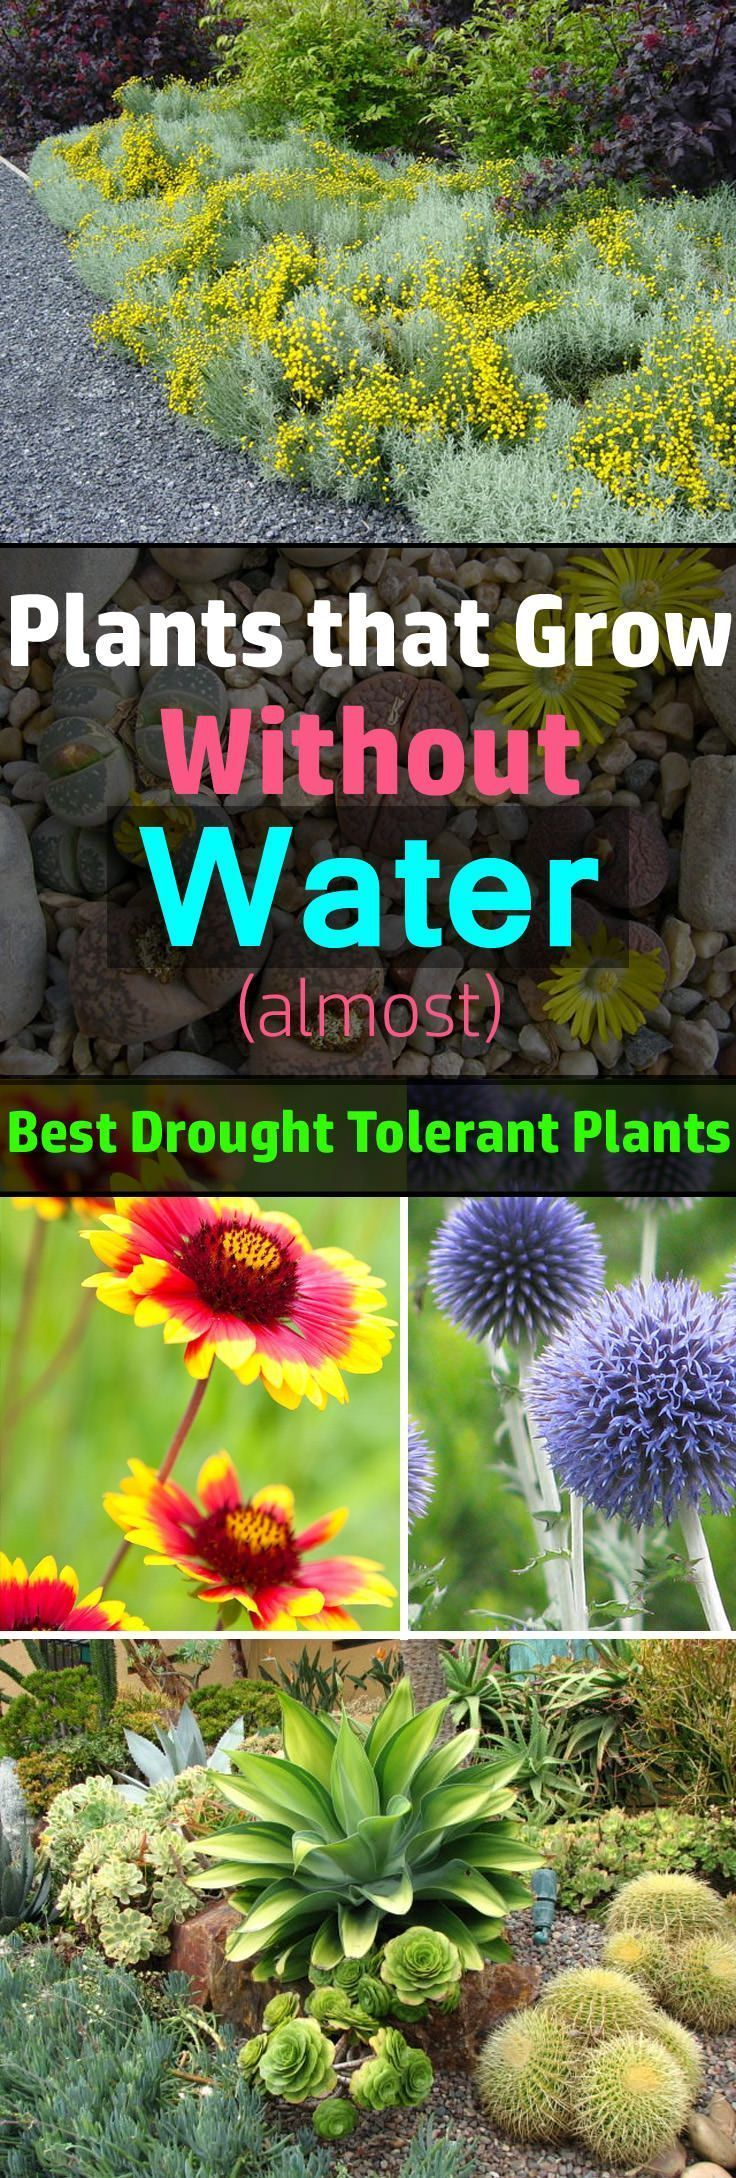 Best Drought Tolerant Plants That Grow In Lack Of Water